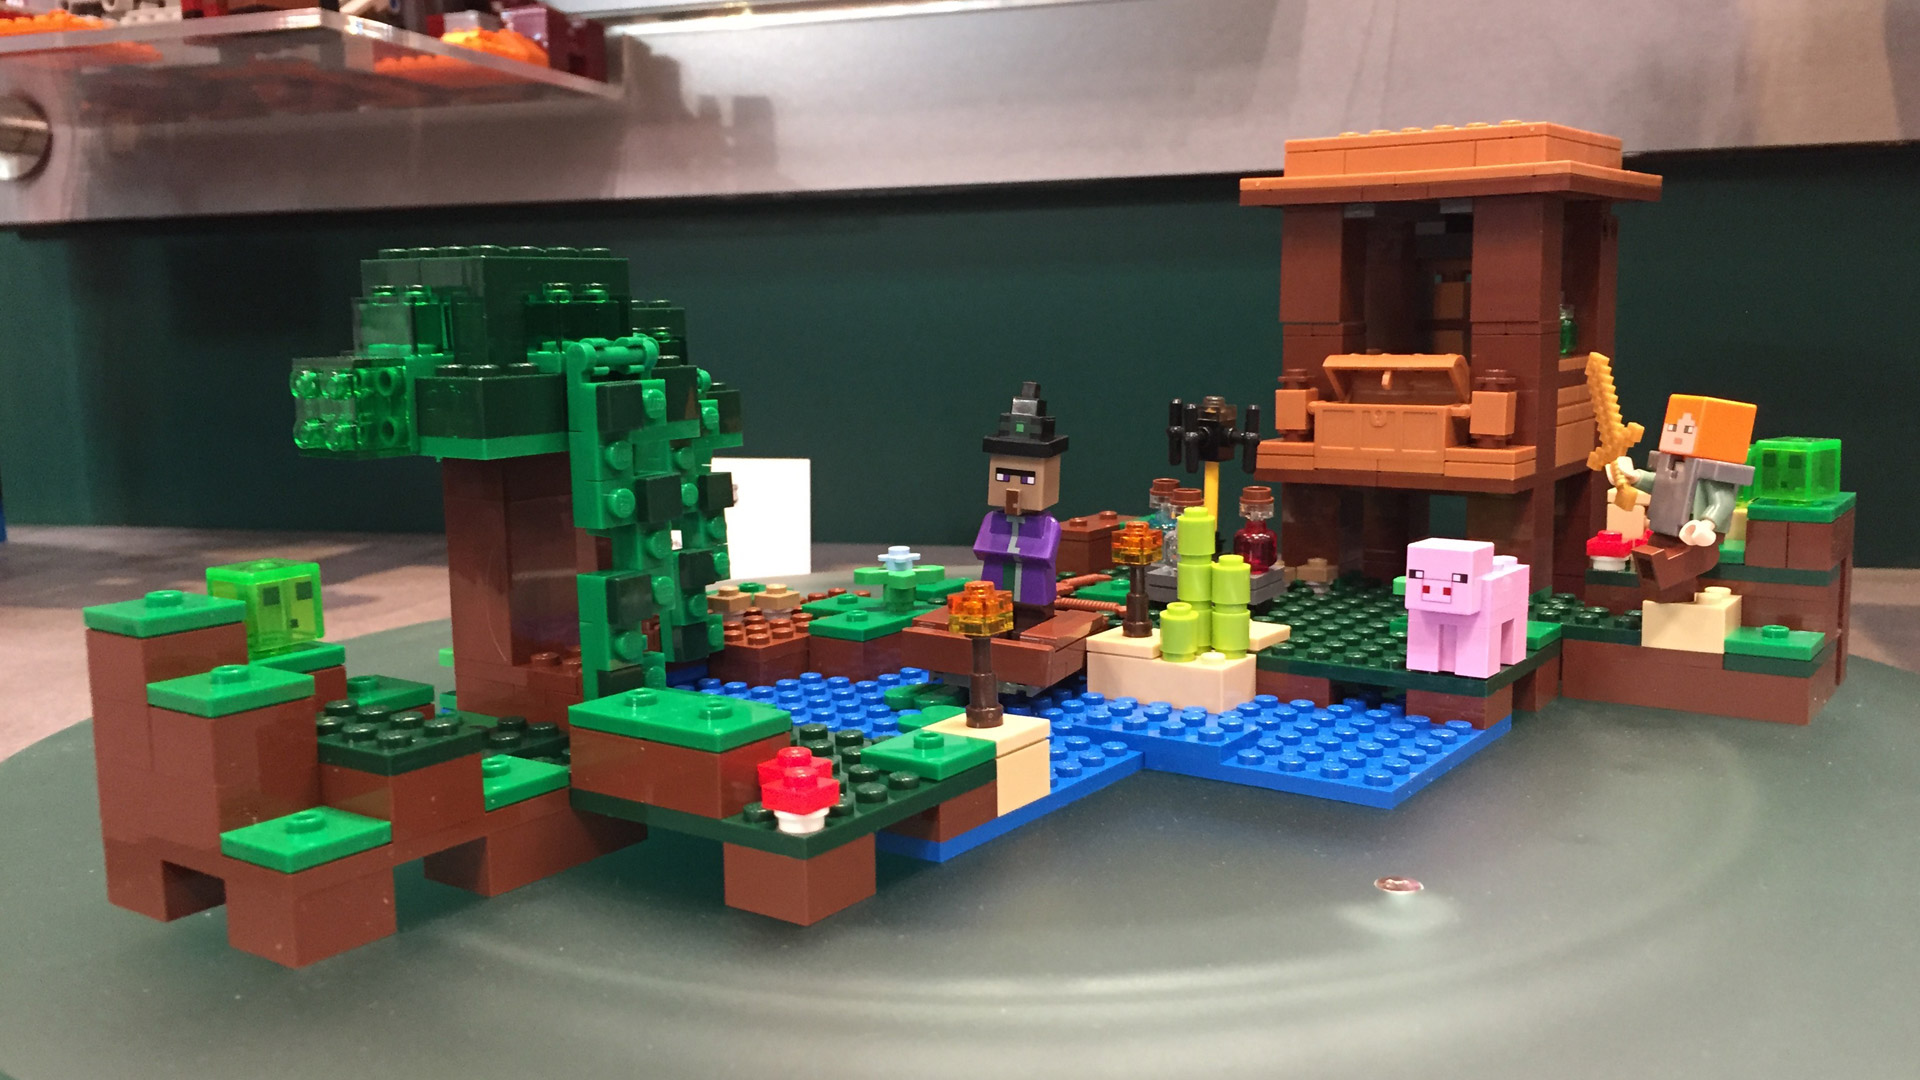 LEGO Minecraft Set 21133 The Witch Hut at Toy Fair 2017